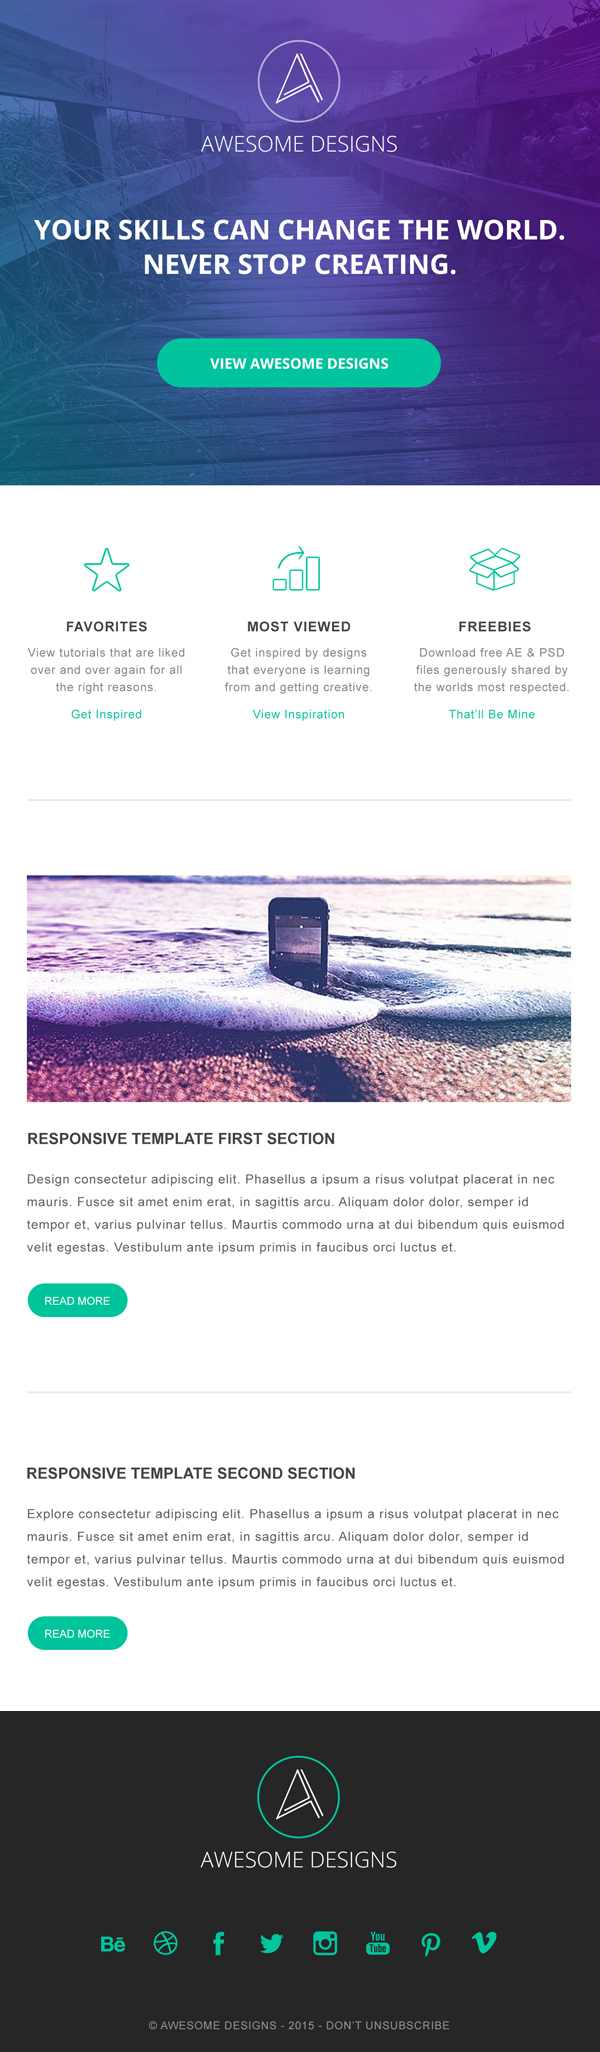 Free Responsive Email Template Design PSD